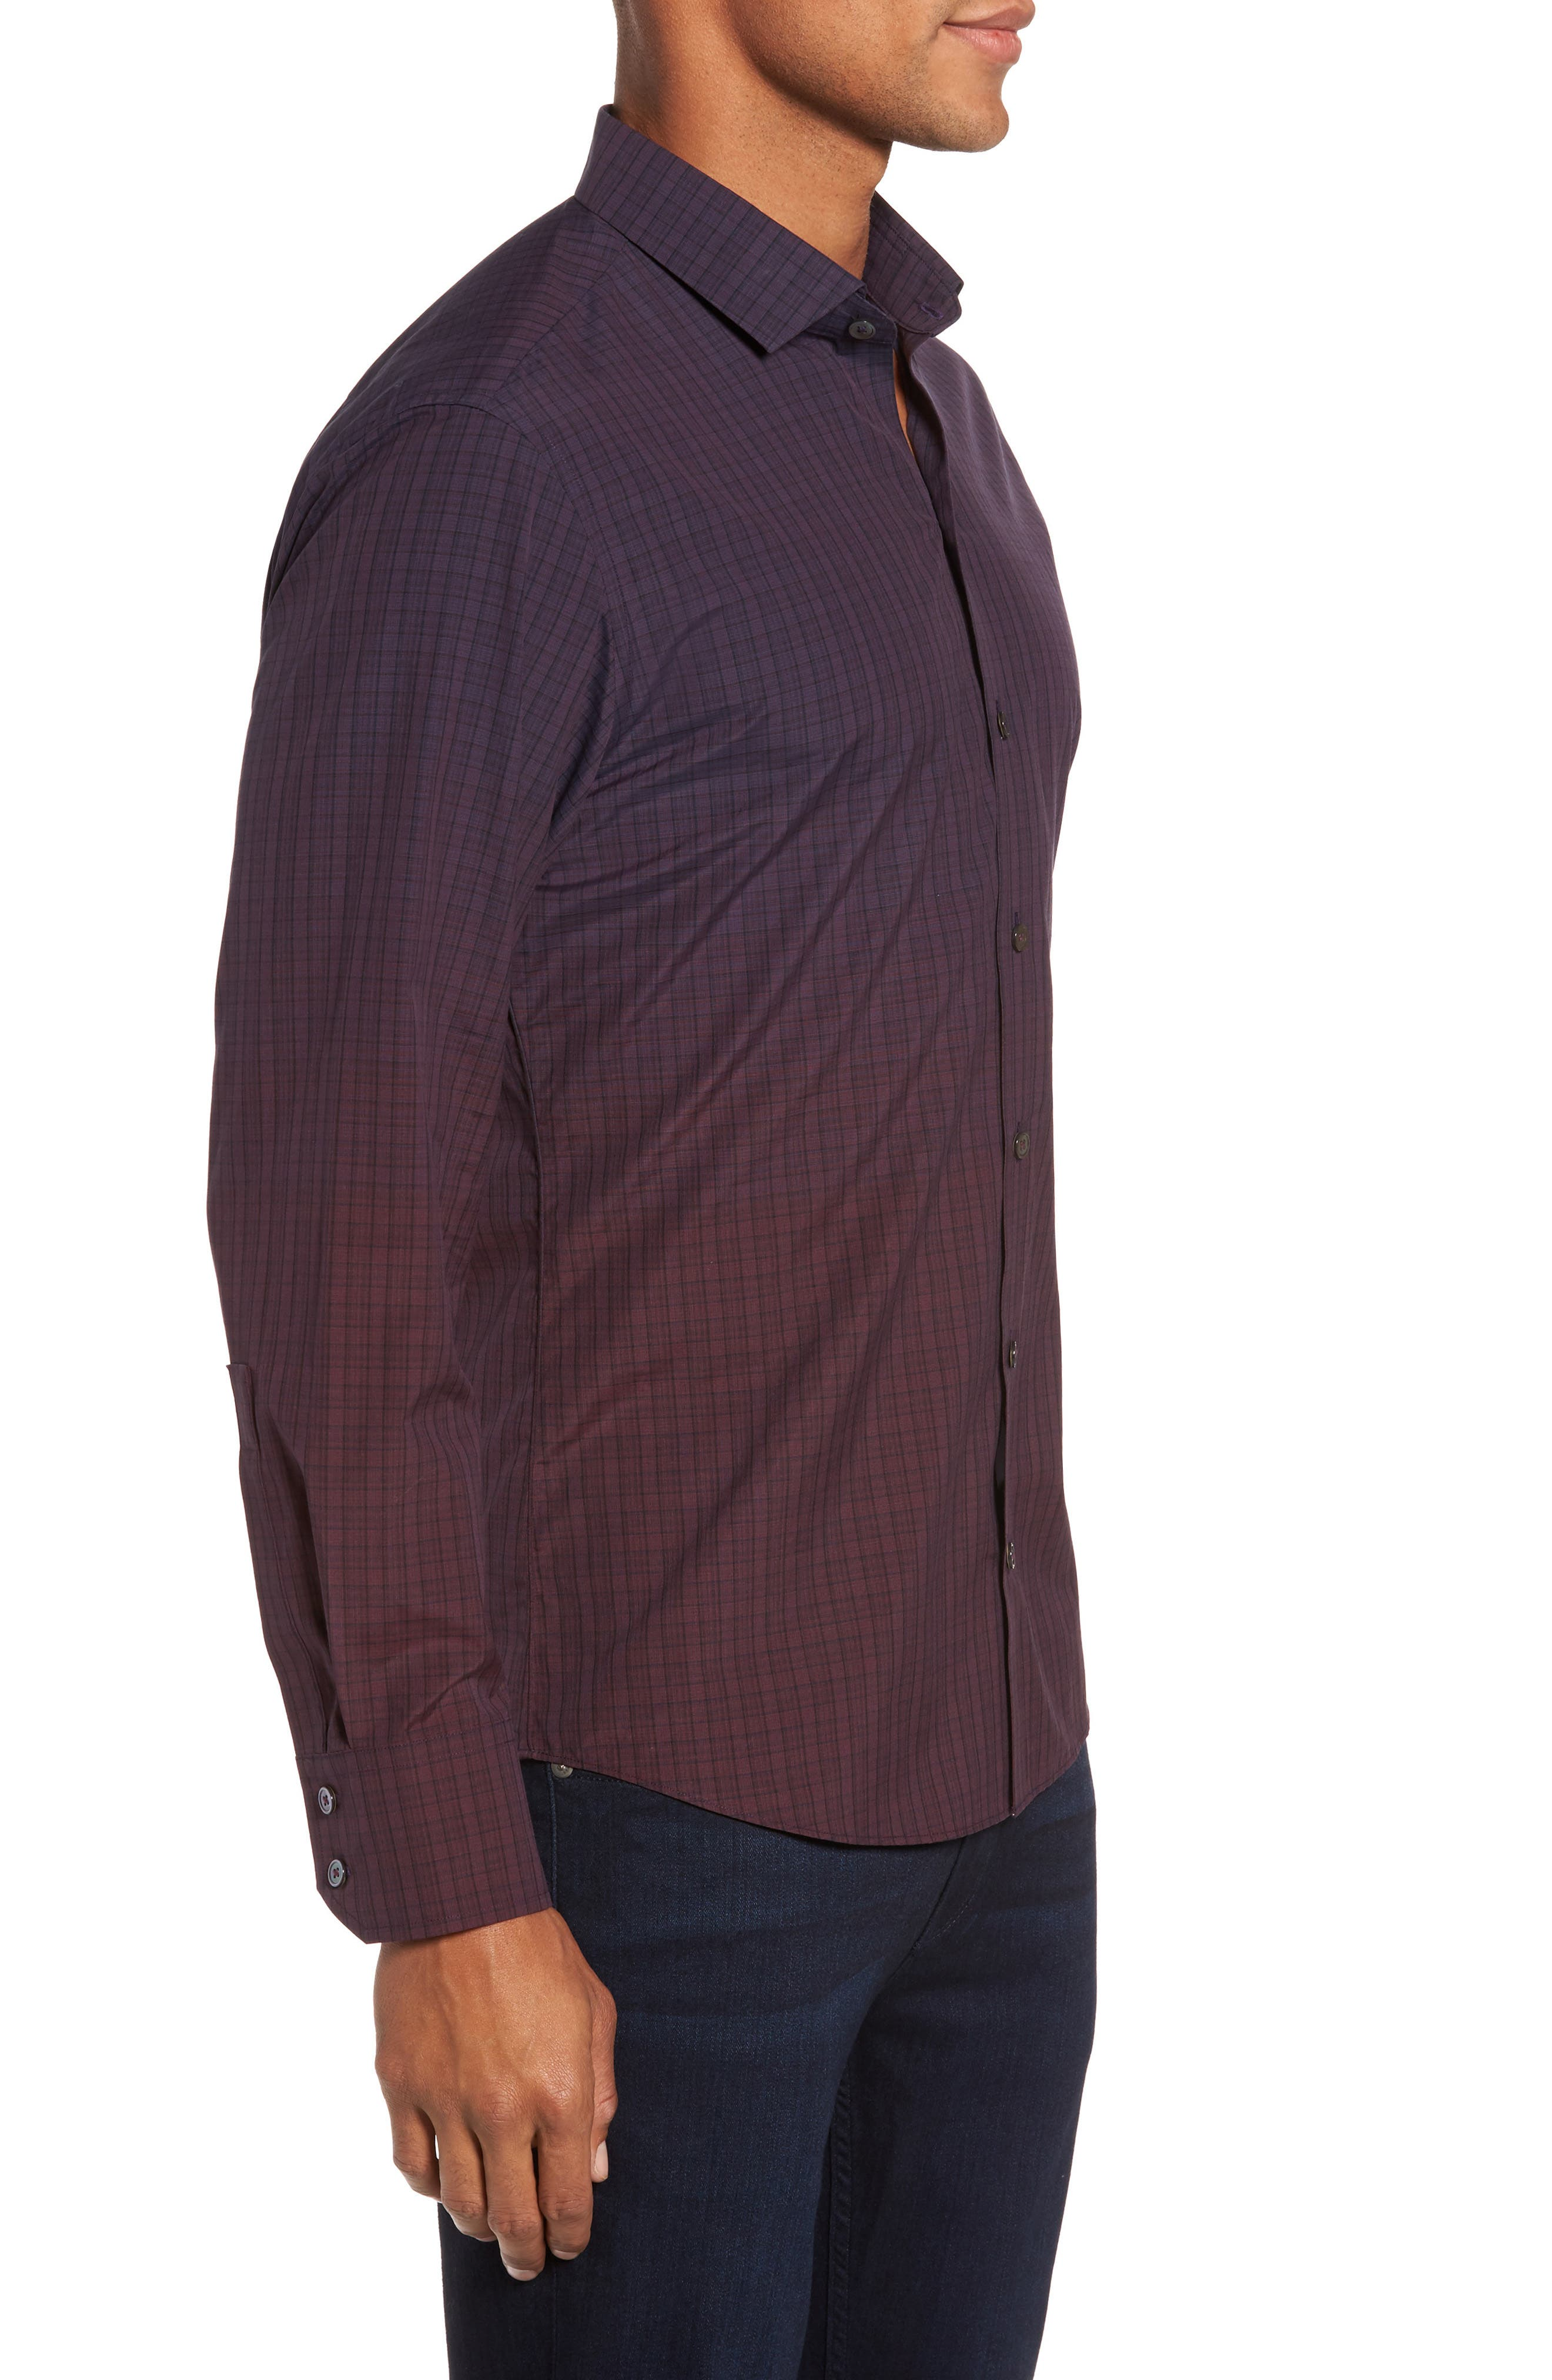 Wein Slim Fit Check Sport Shirt,                             Alternate thumbnail 3, color,                             Wine